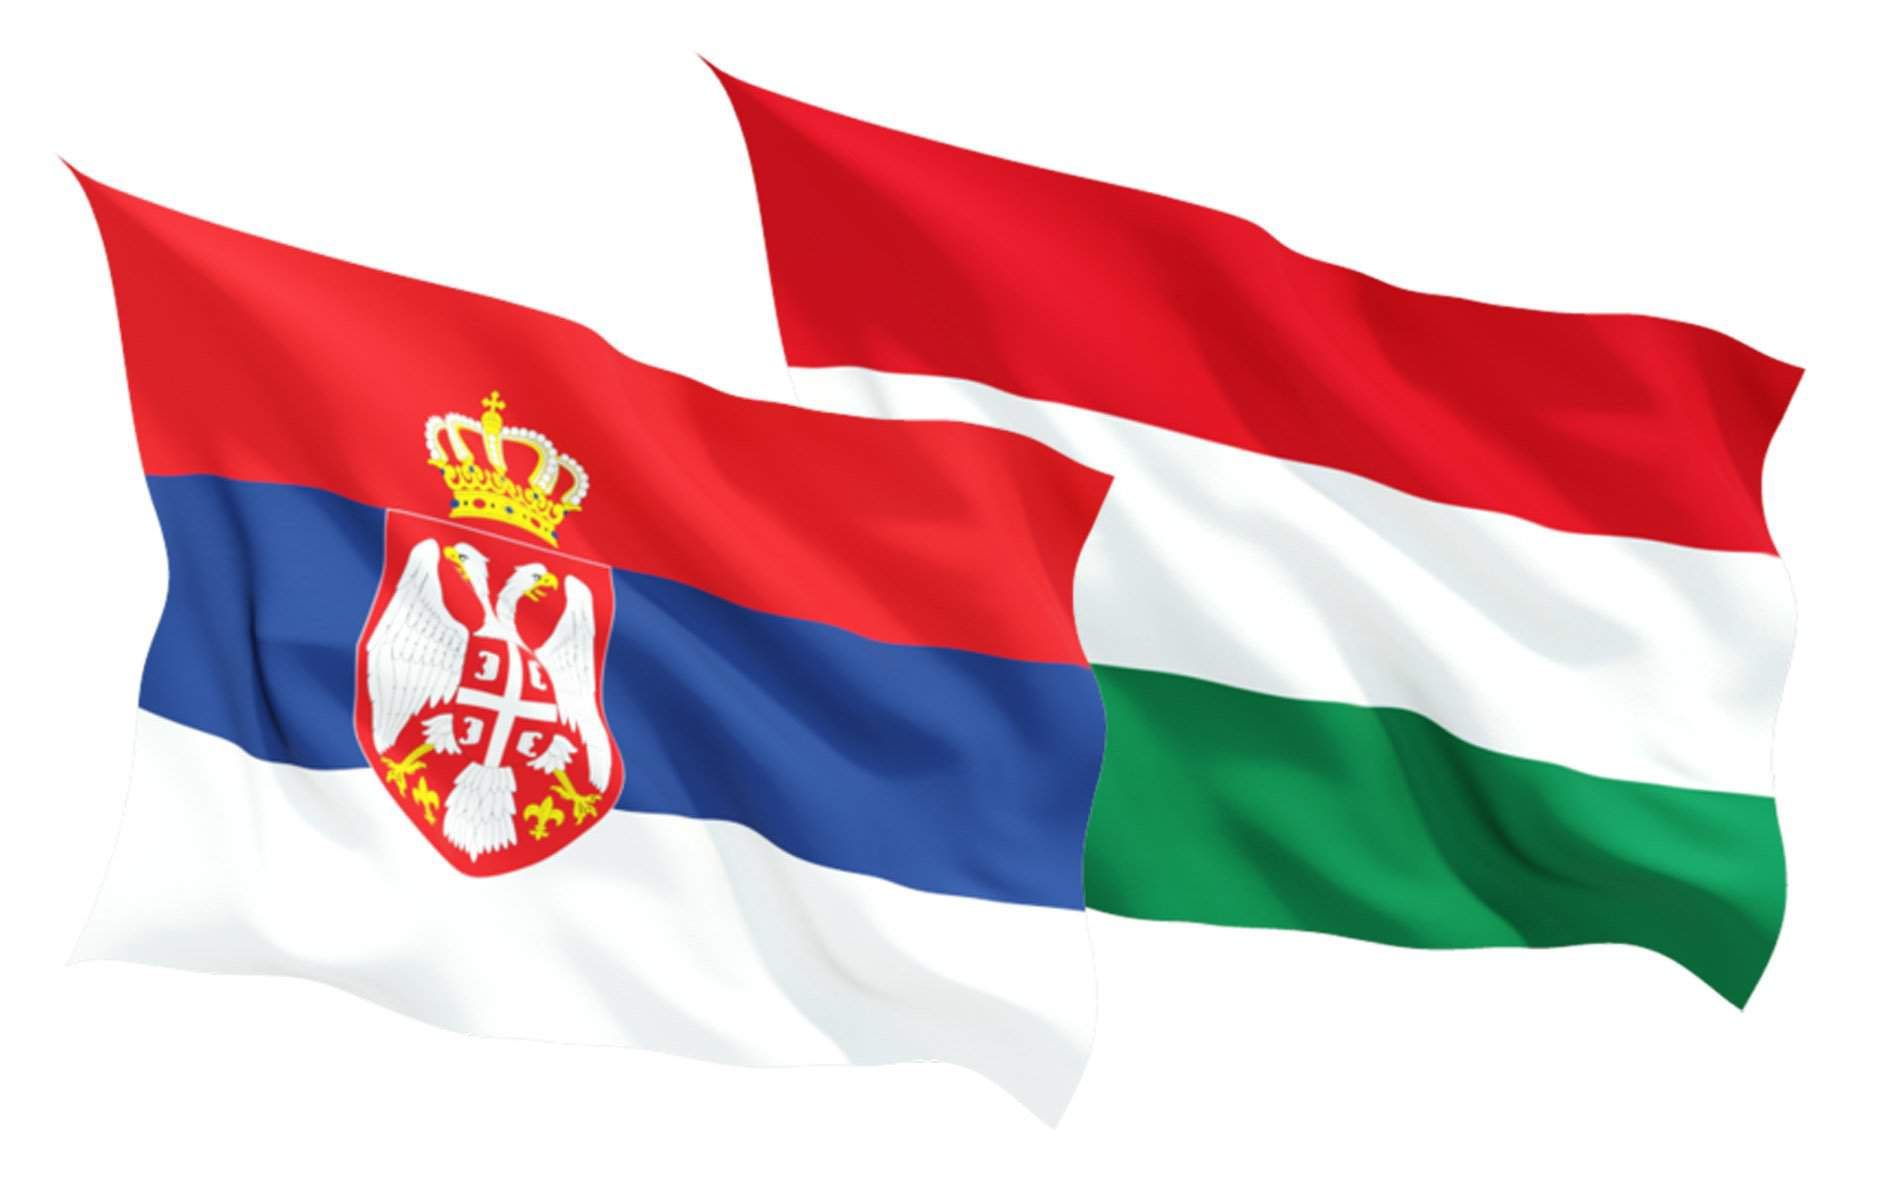 Hungarian Defence Minister held talks with Serbian counterpart